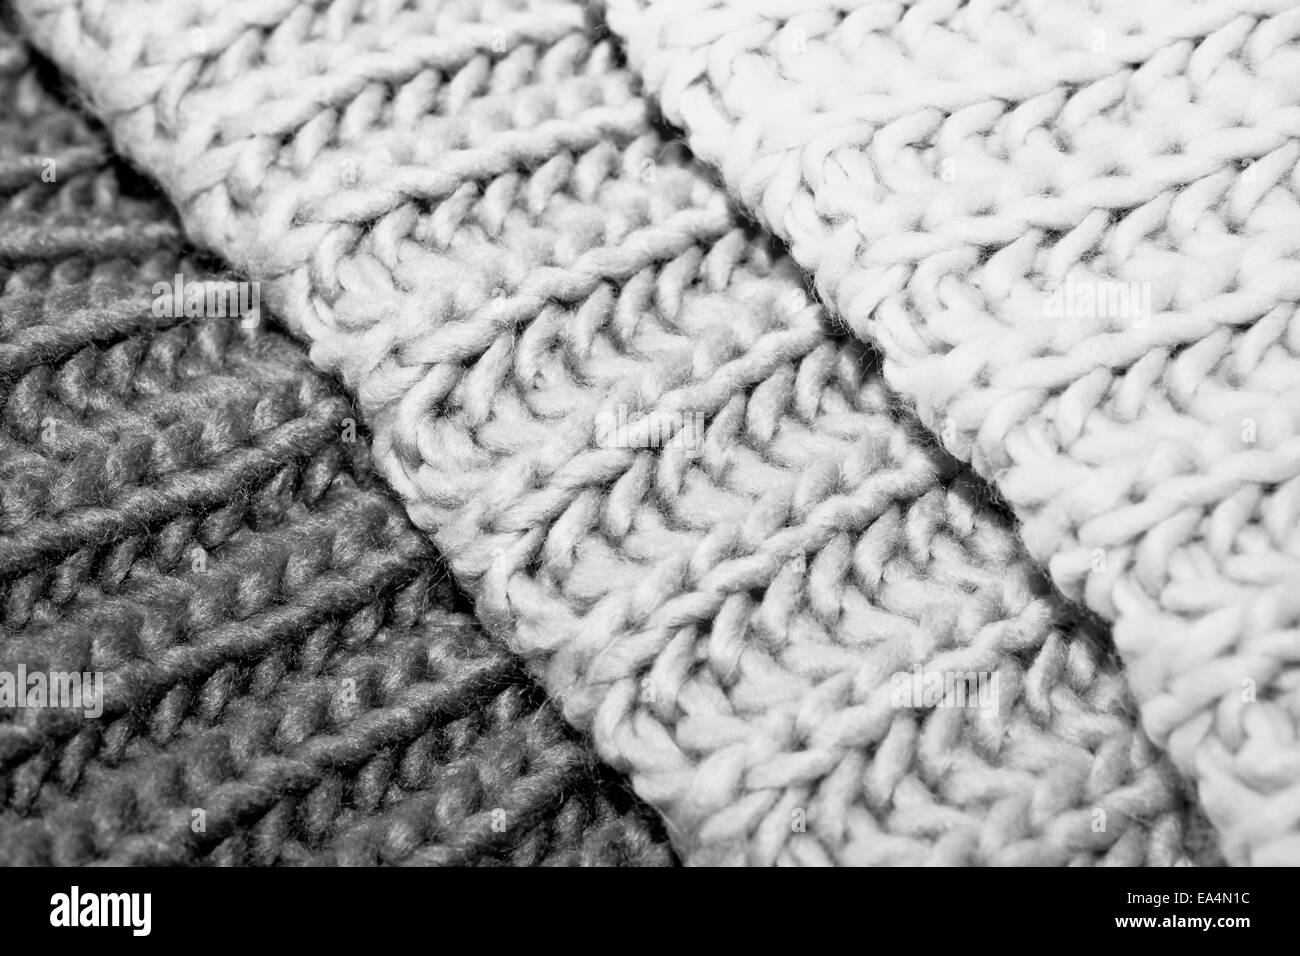 Wool in shades of white,grey and black - Stock Image